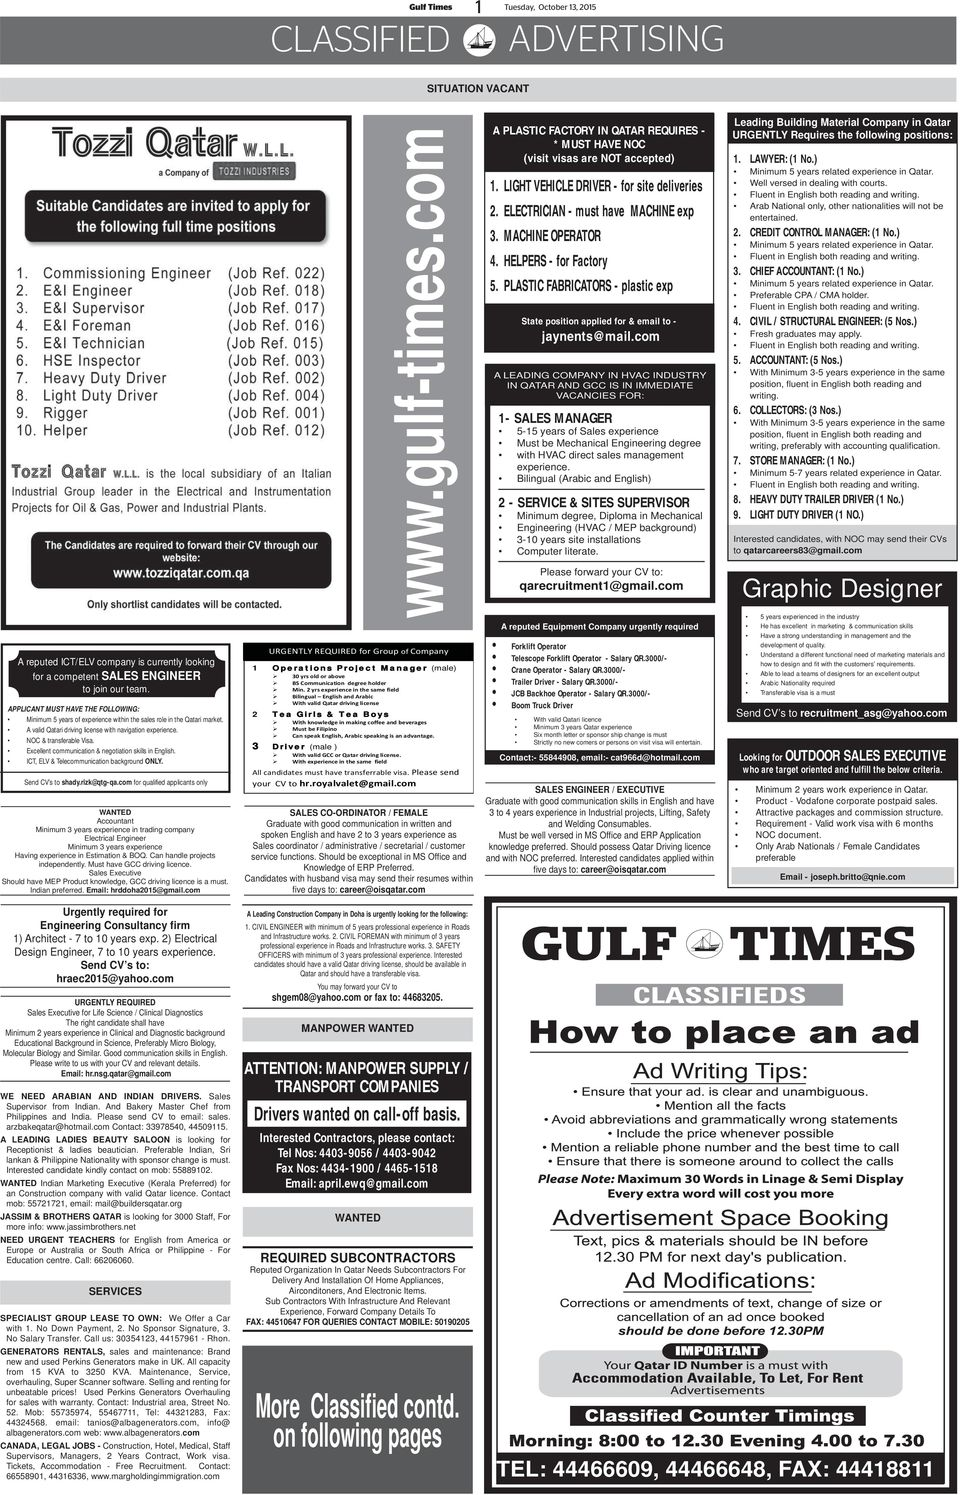 positions vacant times classified